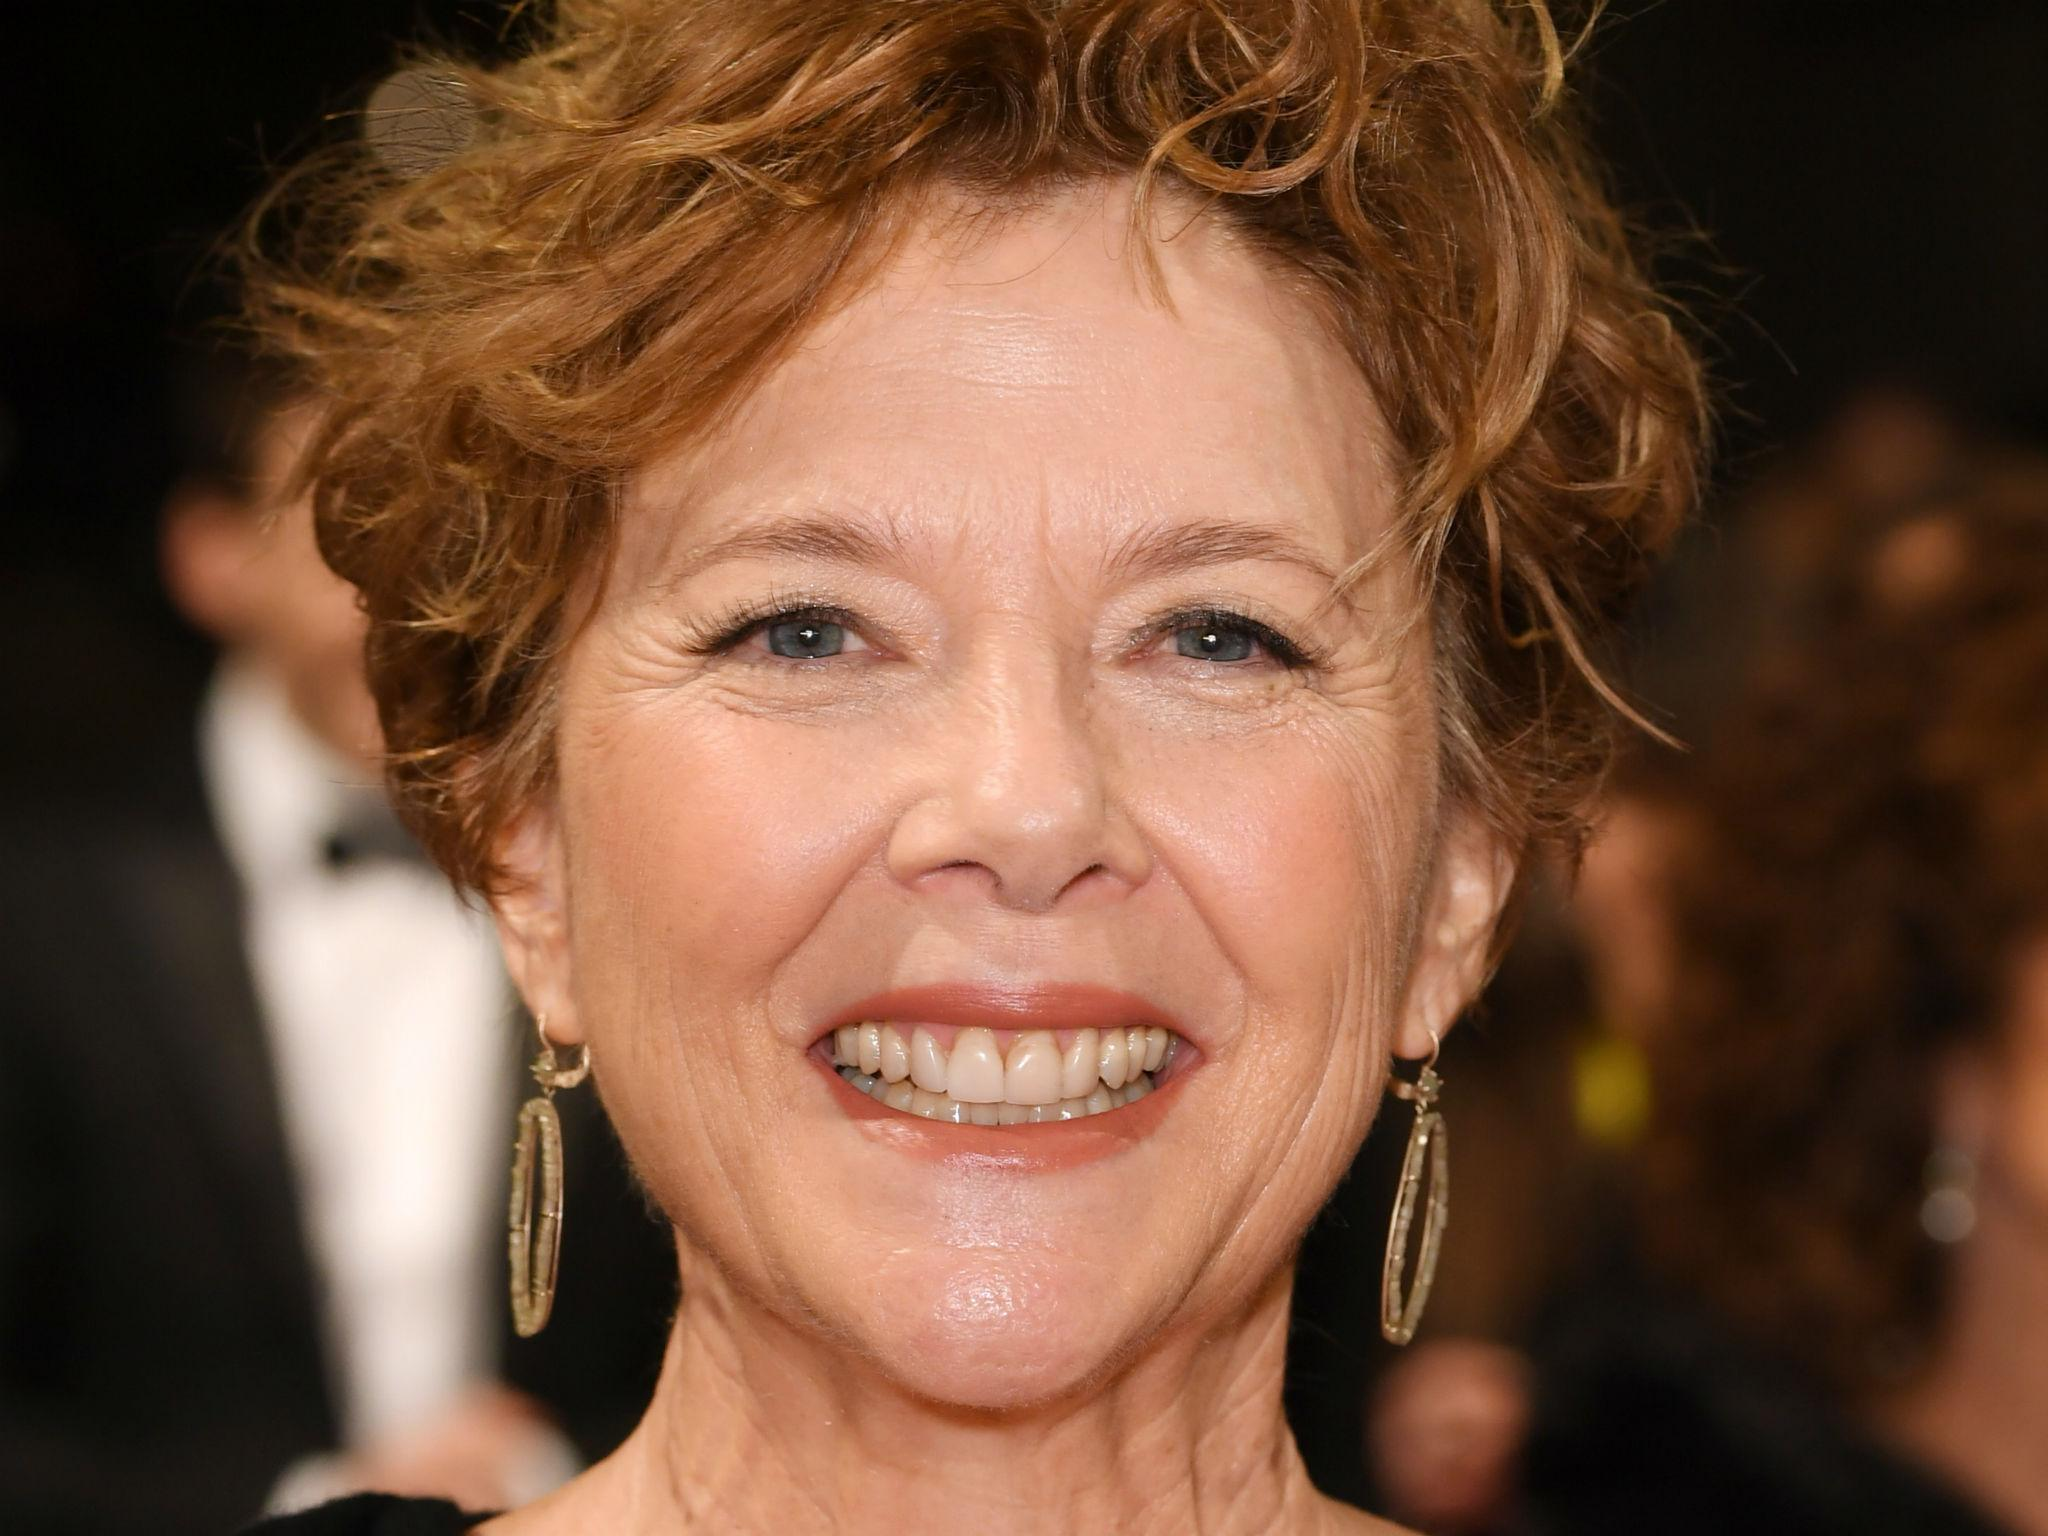 Annette Bening opens up about parenting her transgender son